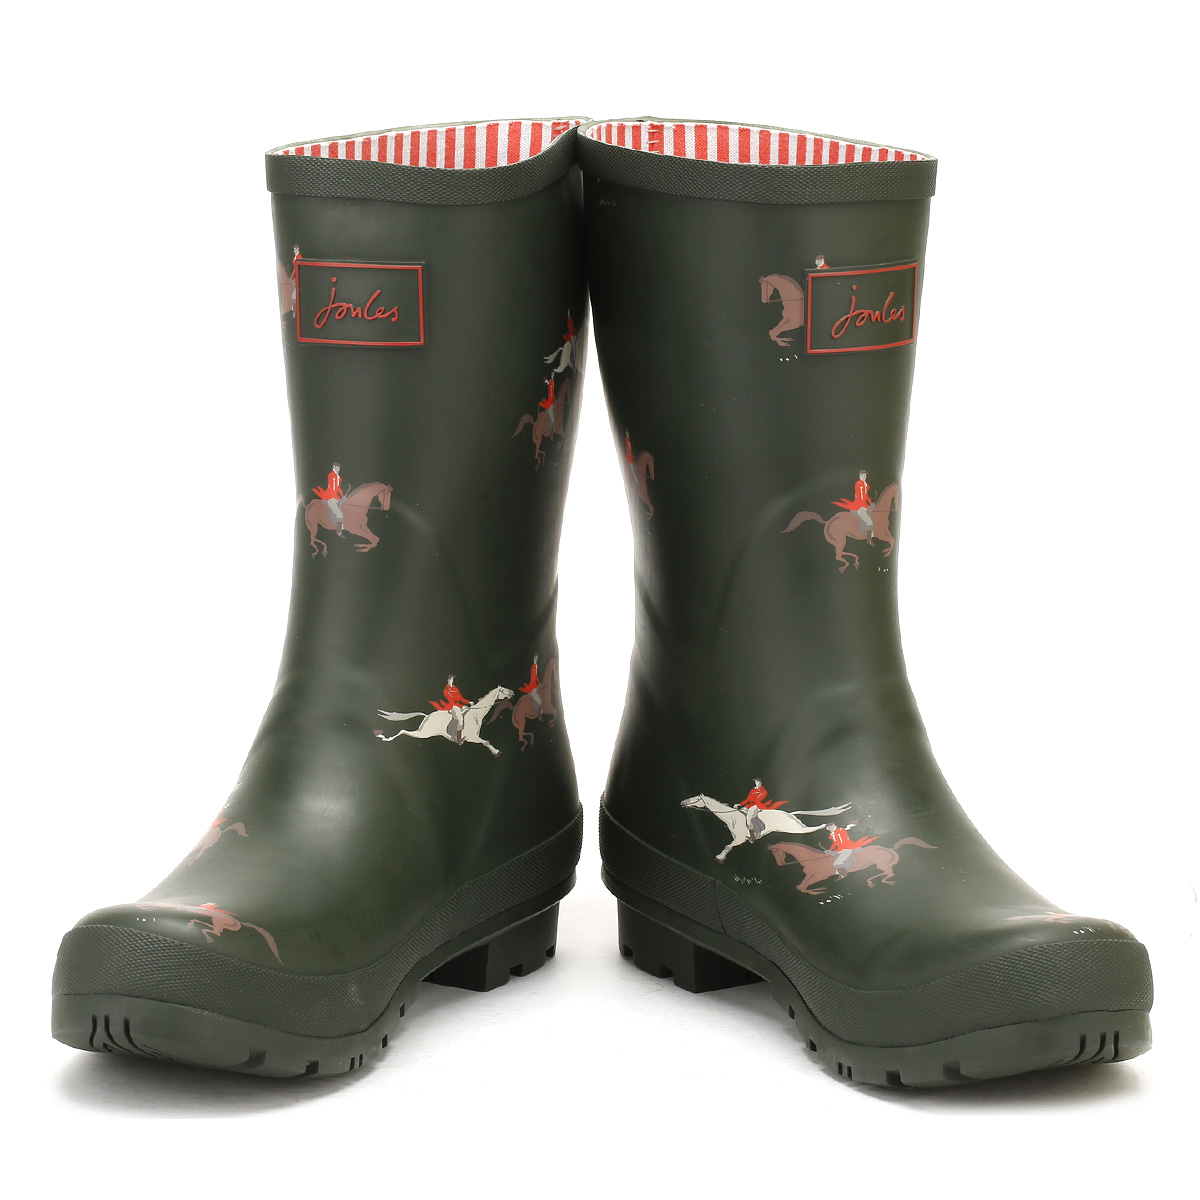 Joules Mujer Botas Wellington Caballo Verde Oliva Molly Goma Impermeable Wellies